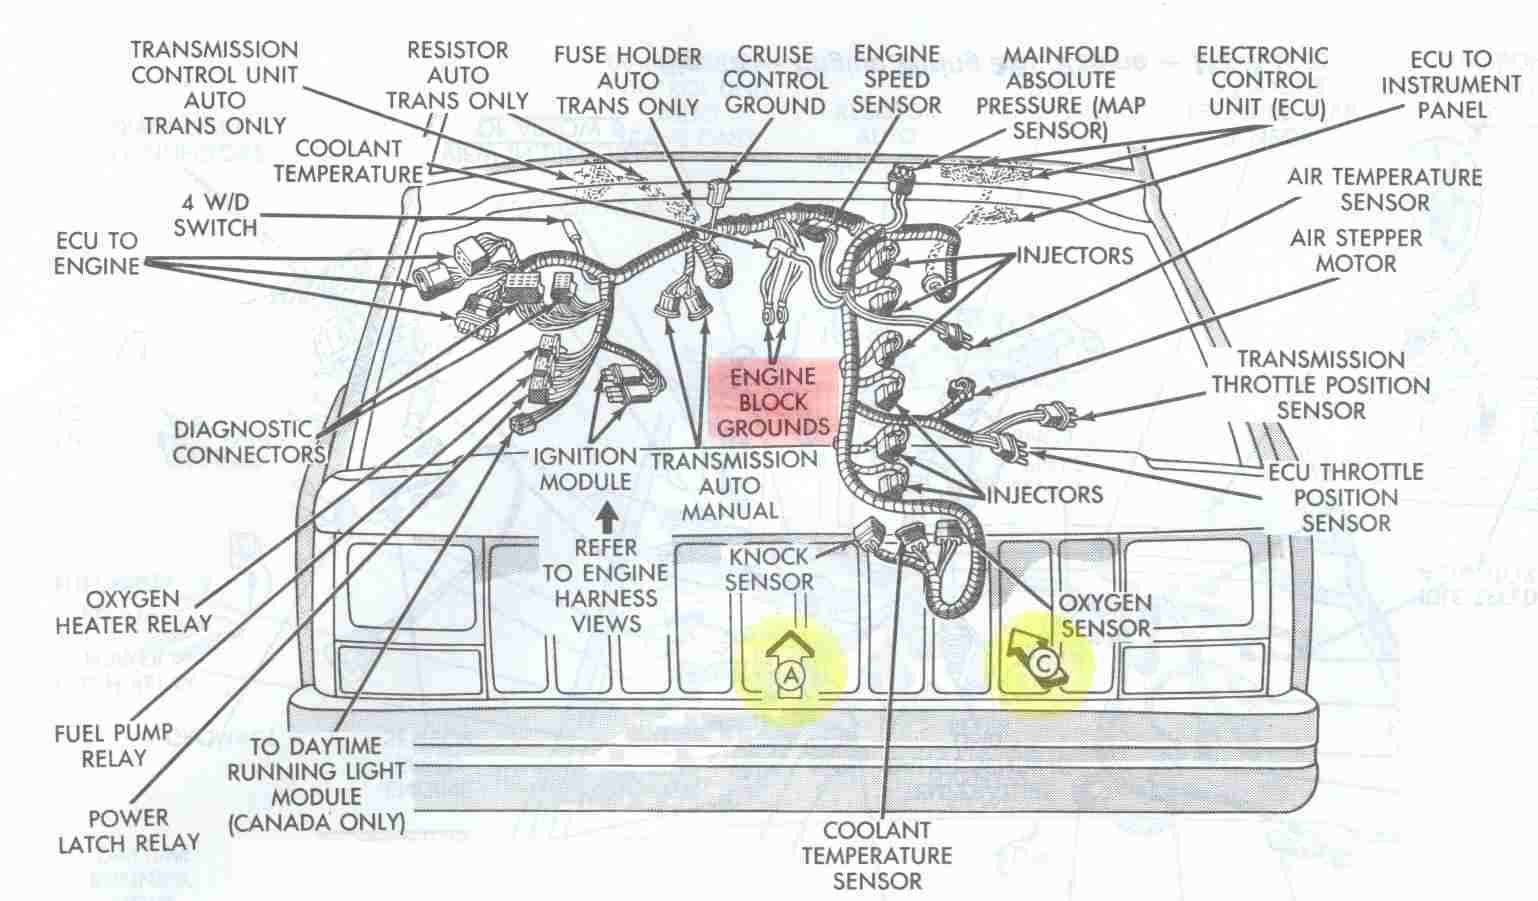 hight resolution of main fuse box cherokee xj wiring libraryengine bay schematic showing major electrical ground points for 4